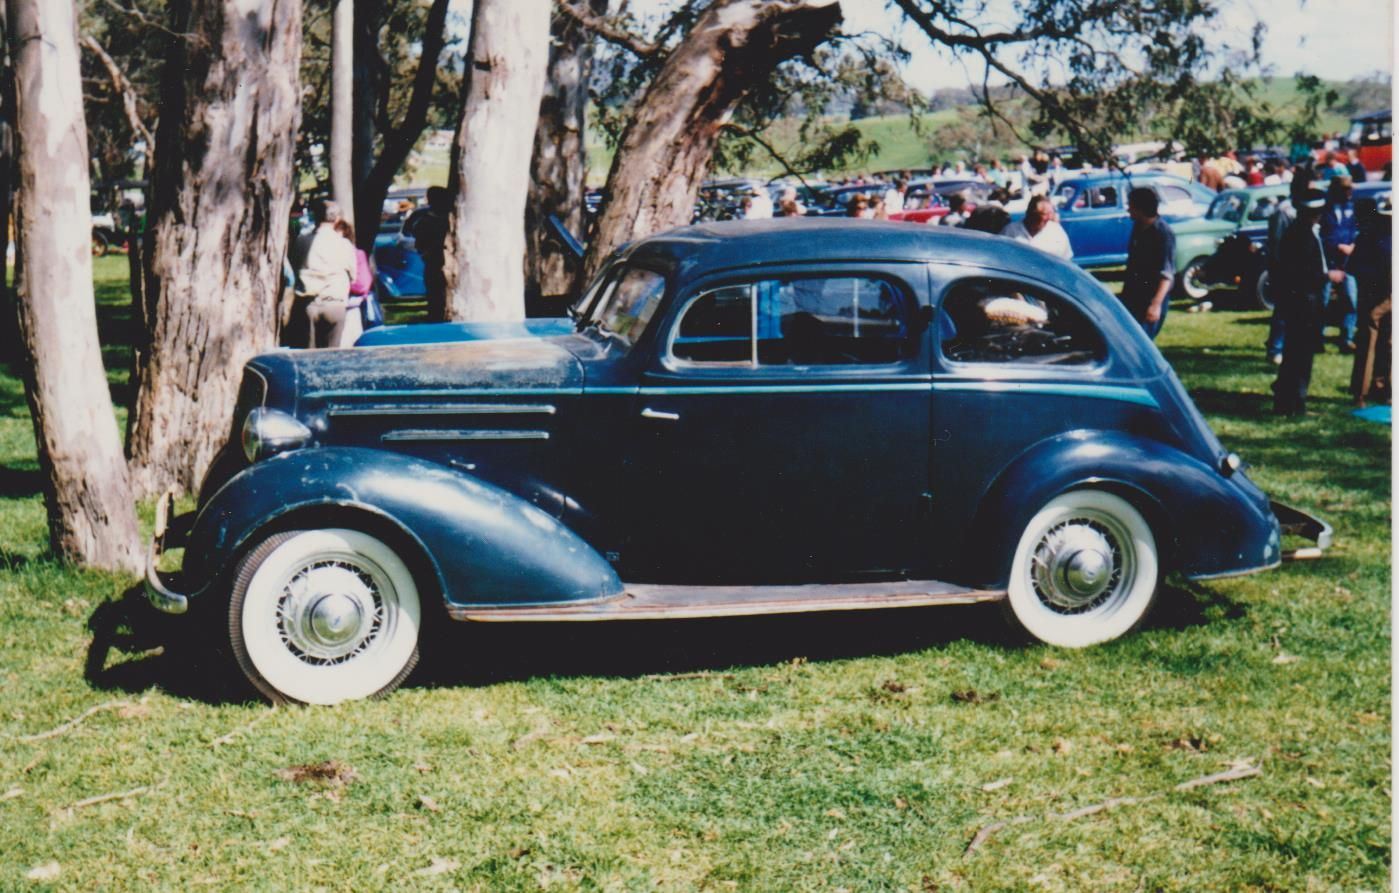 1935 Holdens Body Chev Master Sloper The First Year Of Chev